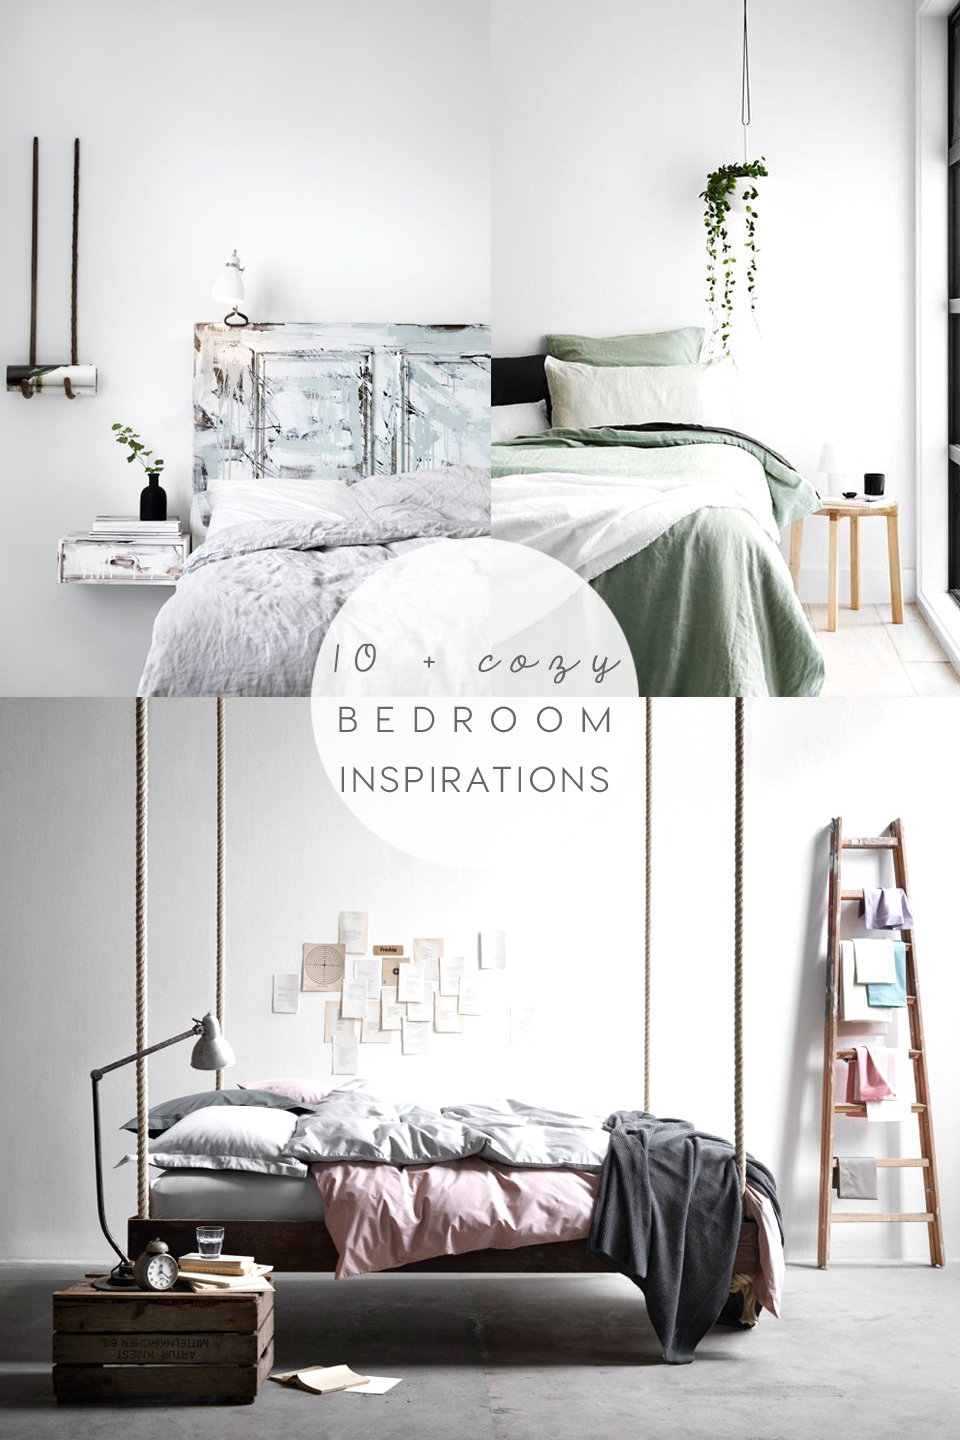 cozy bedroom design, bedroom inspirations, cozy bed, italianbark interior design blog